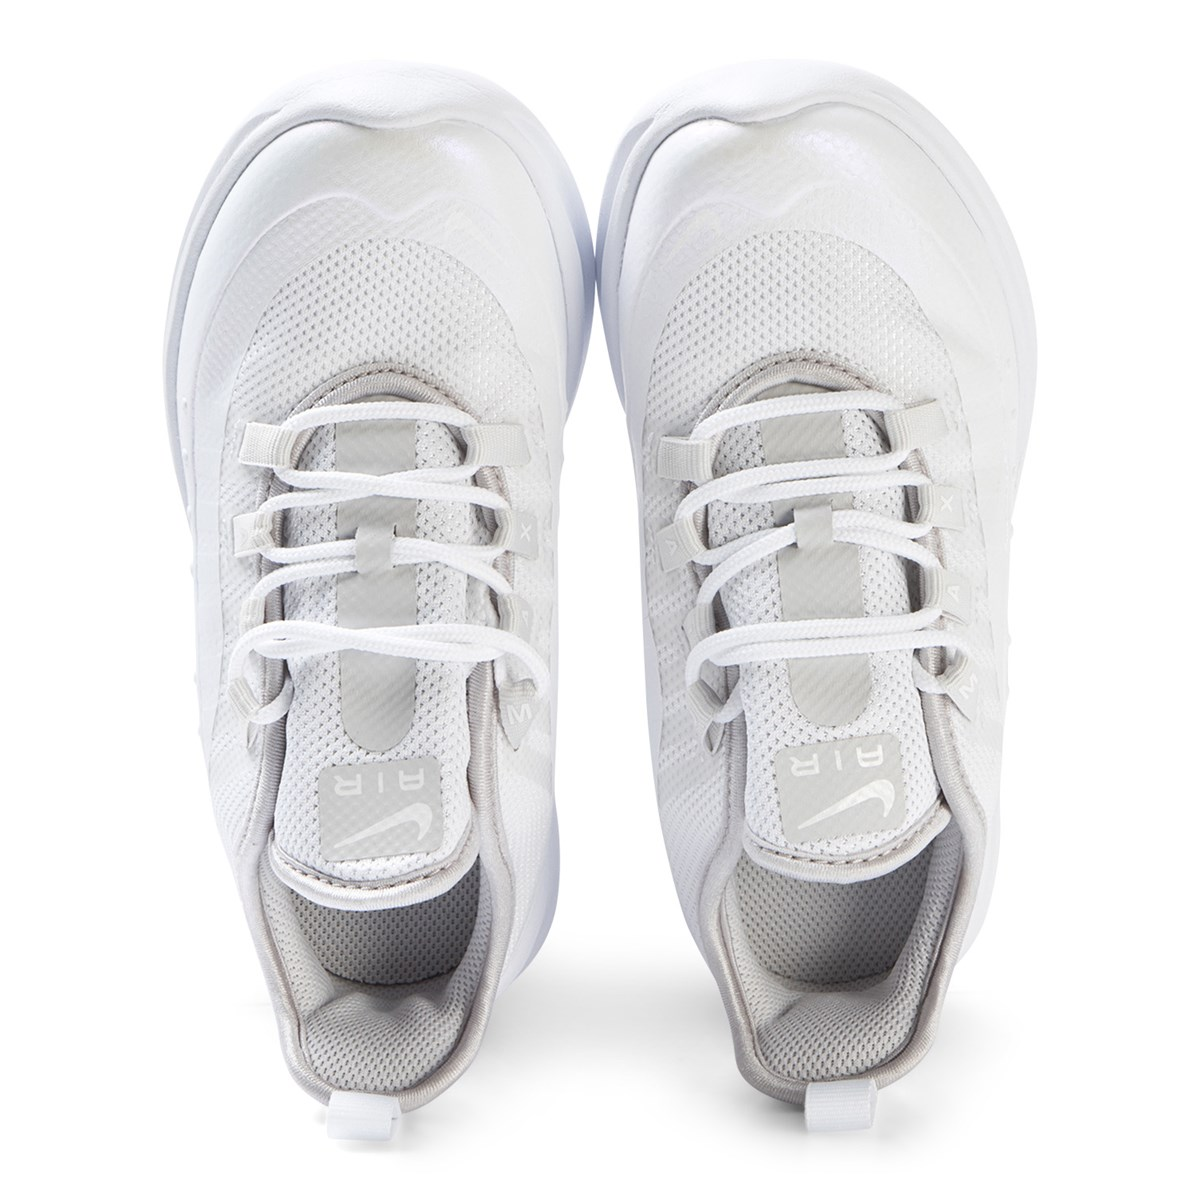 NIKE White Nike Air Max Axis Sneakers Babyshop.no